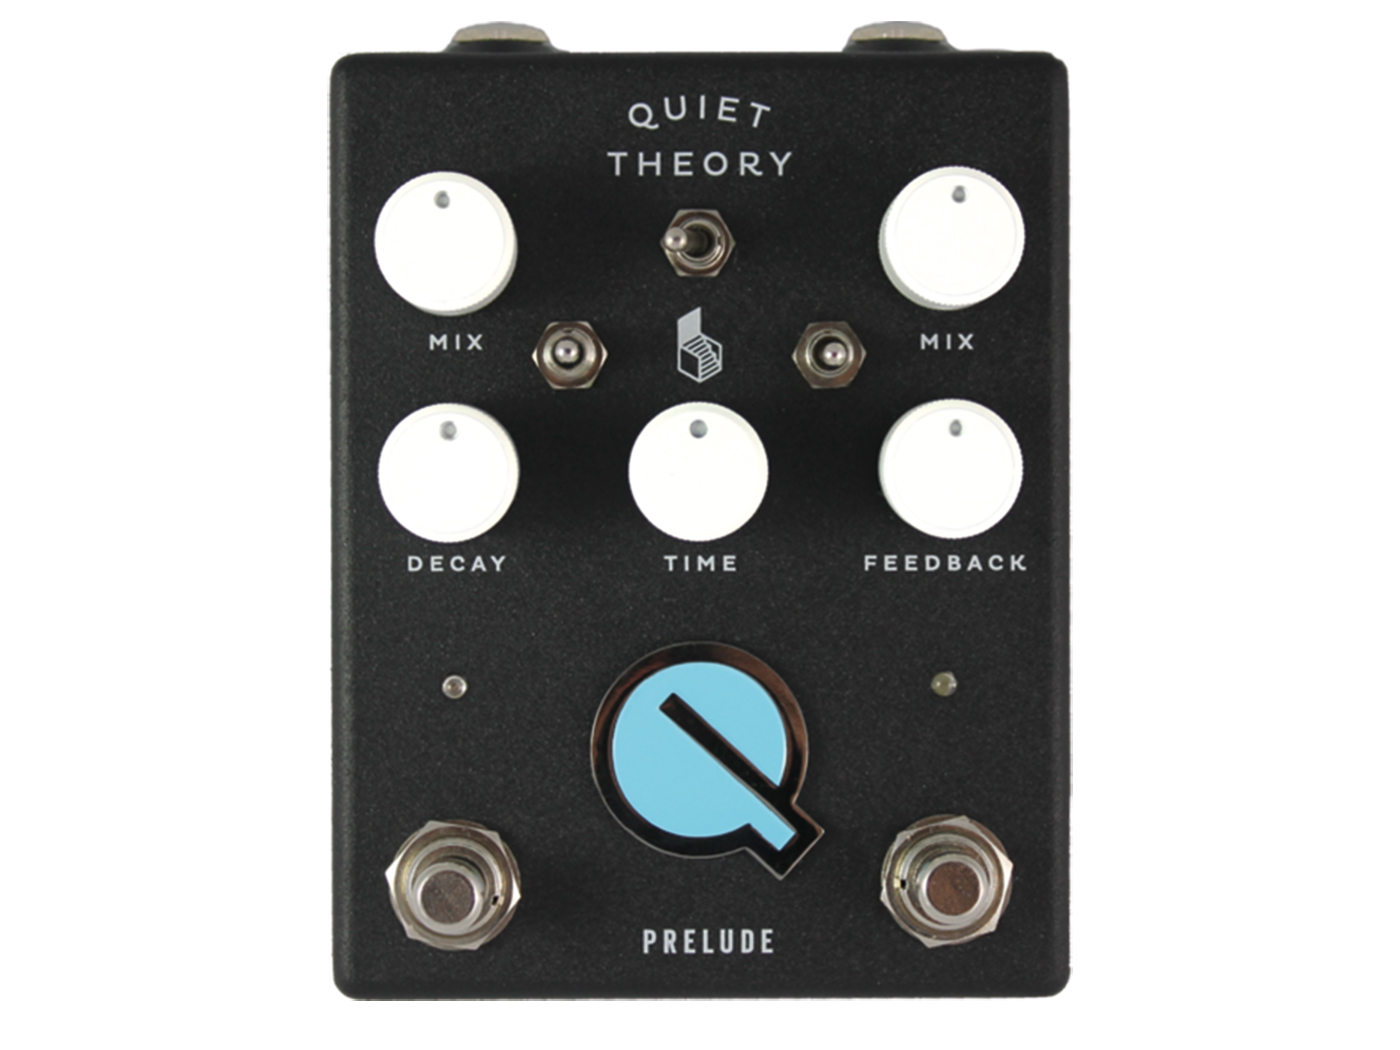 Quiet Theory Prelude